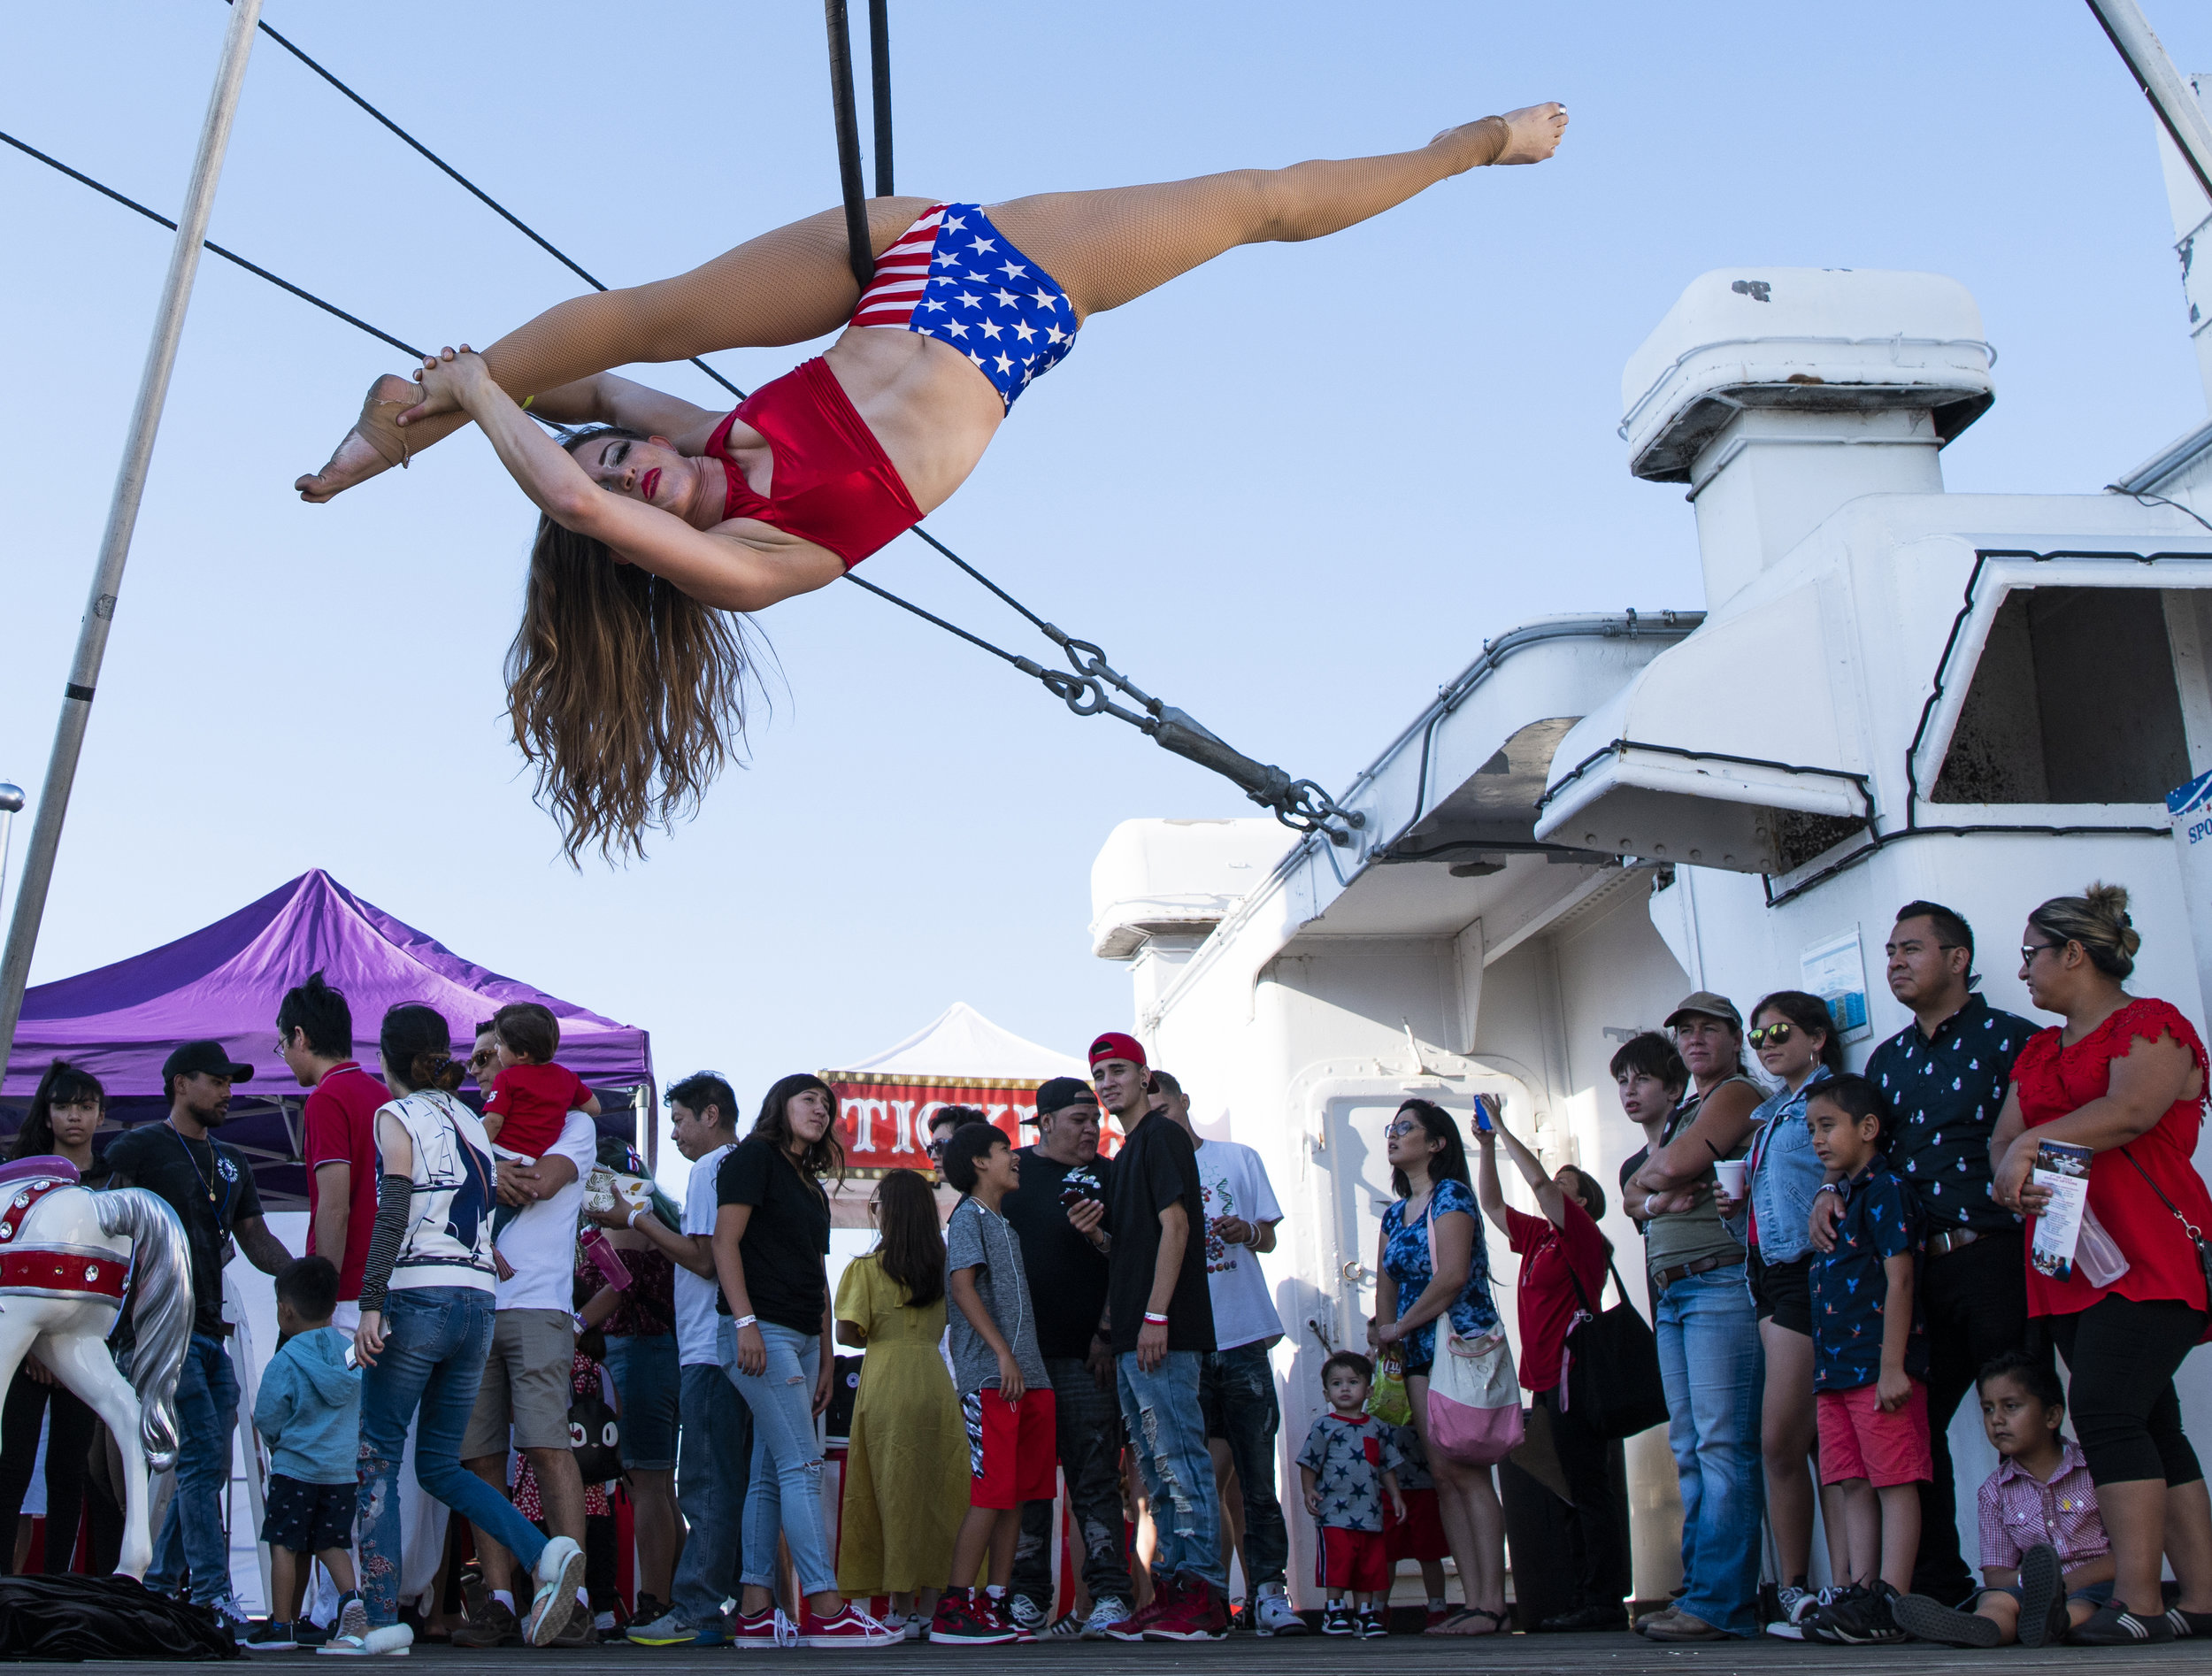 A acrobatics perform on a hoop as the Queen Mary host an All-American 4th of July with live entertainment, family games, arts & crafts and special historic tours along with a signature fireworks spectacular on the legendary ship in Long Beach July 4, 2018.